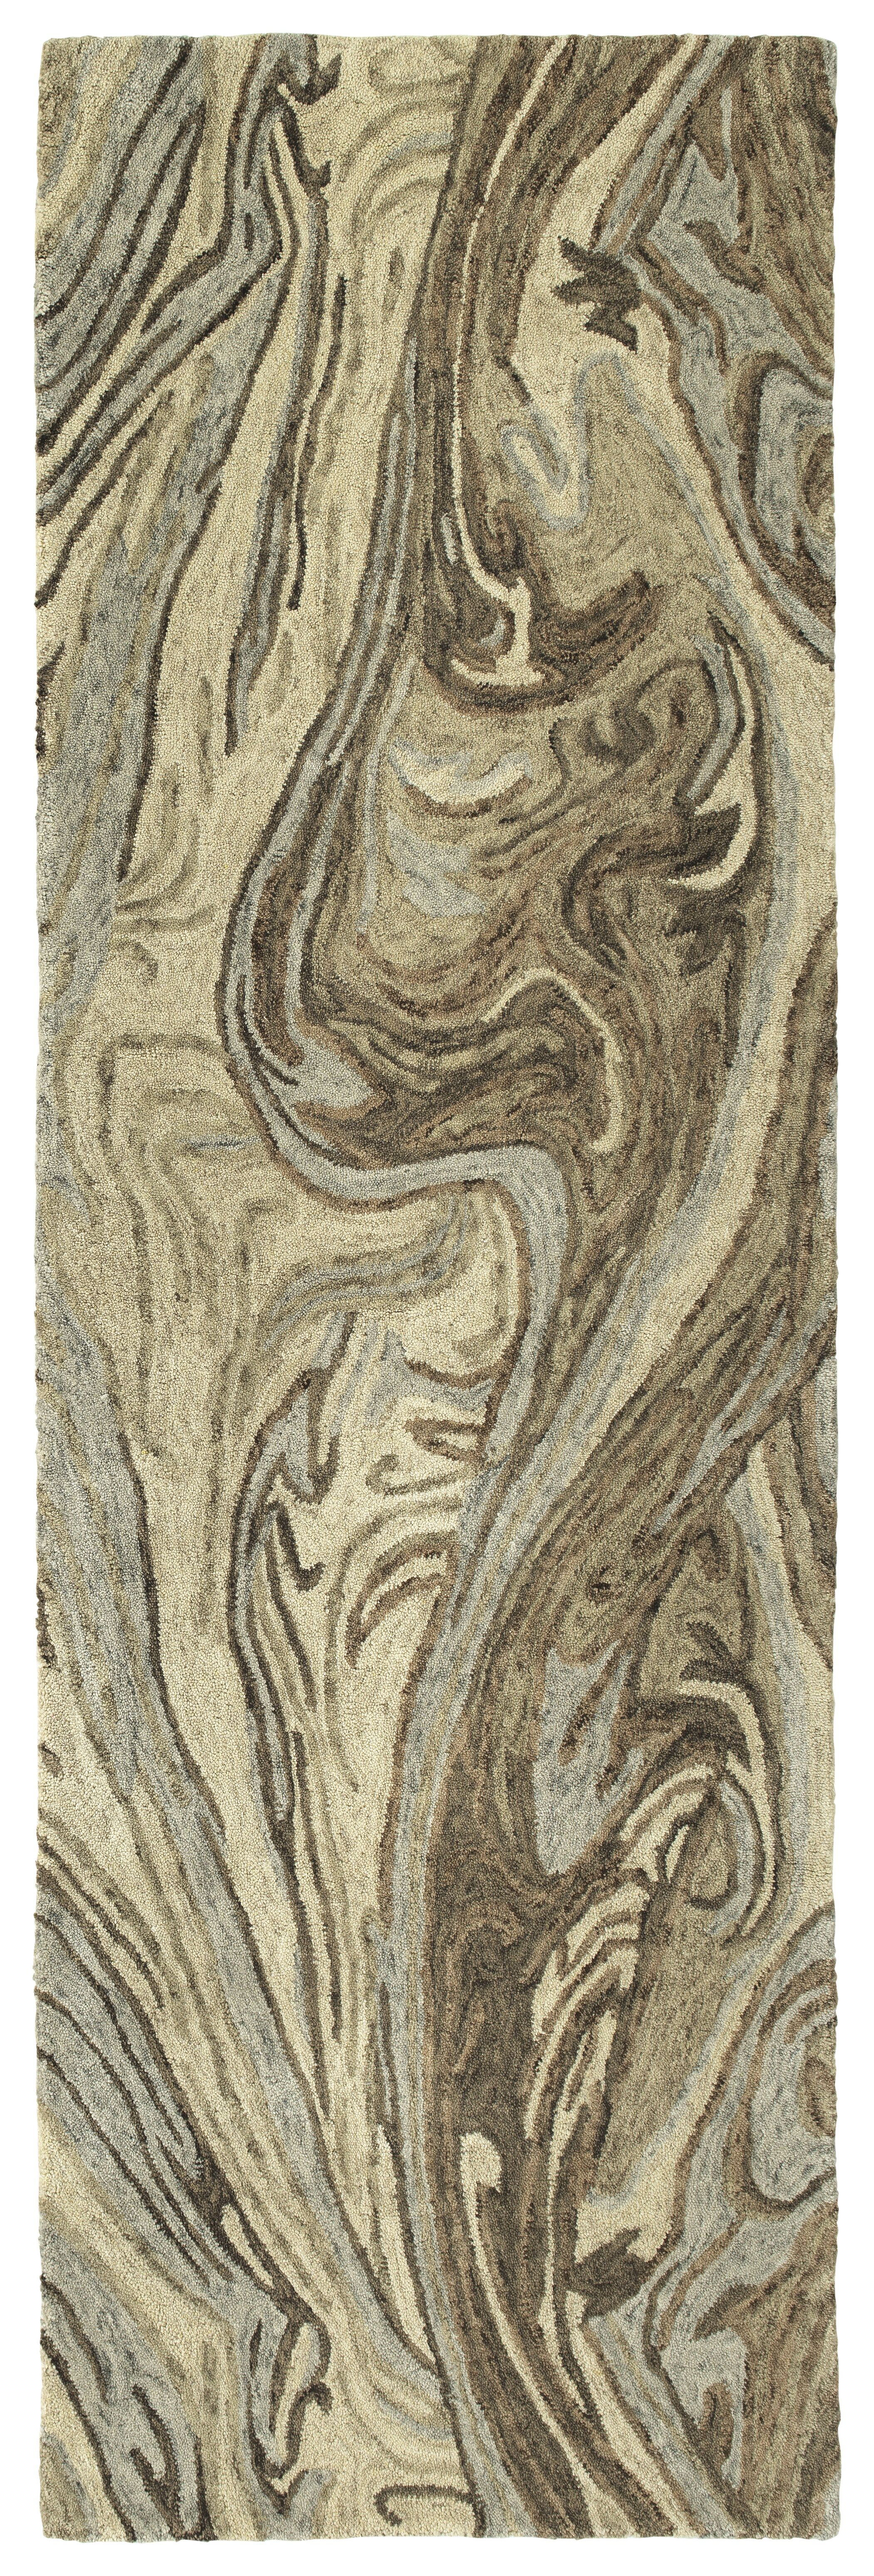 Bargas Hand Tufted Wool Sand Area Rug Rug Size: Runner 2'6